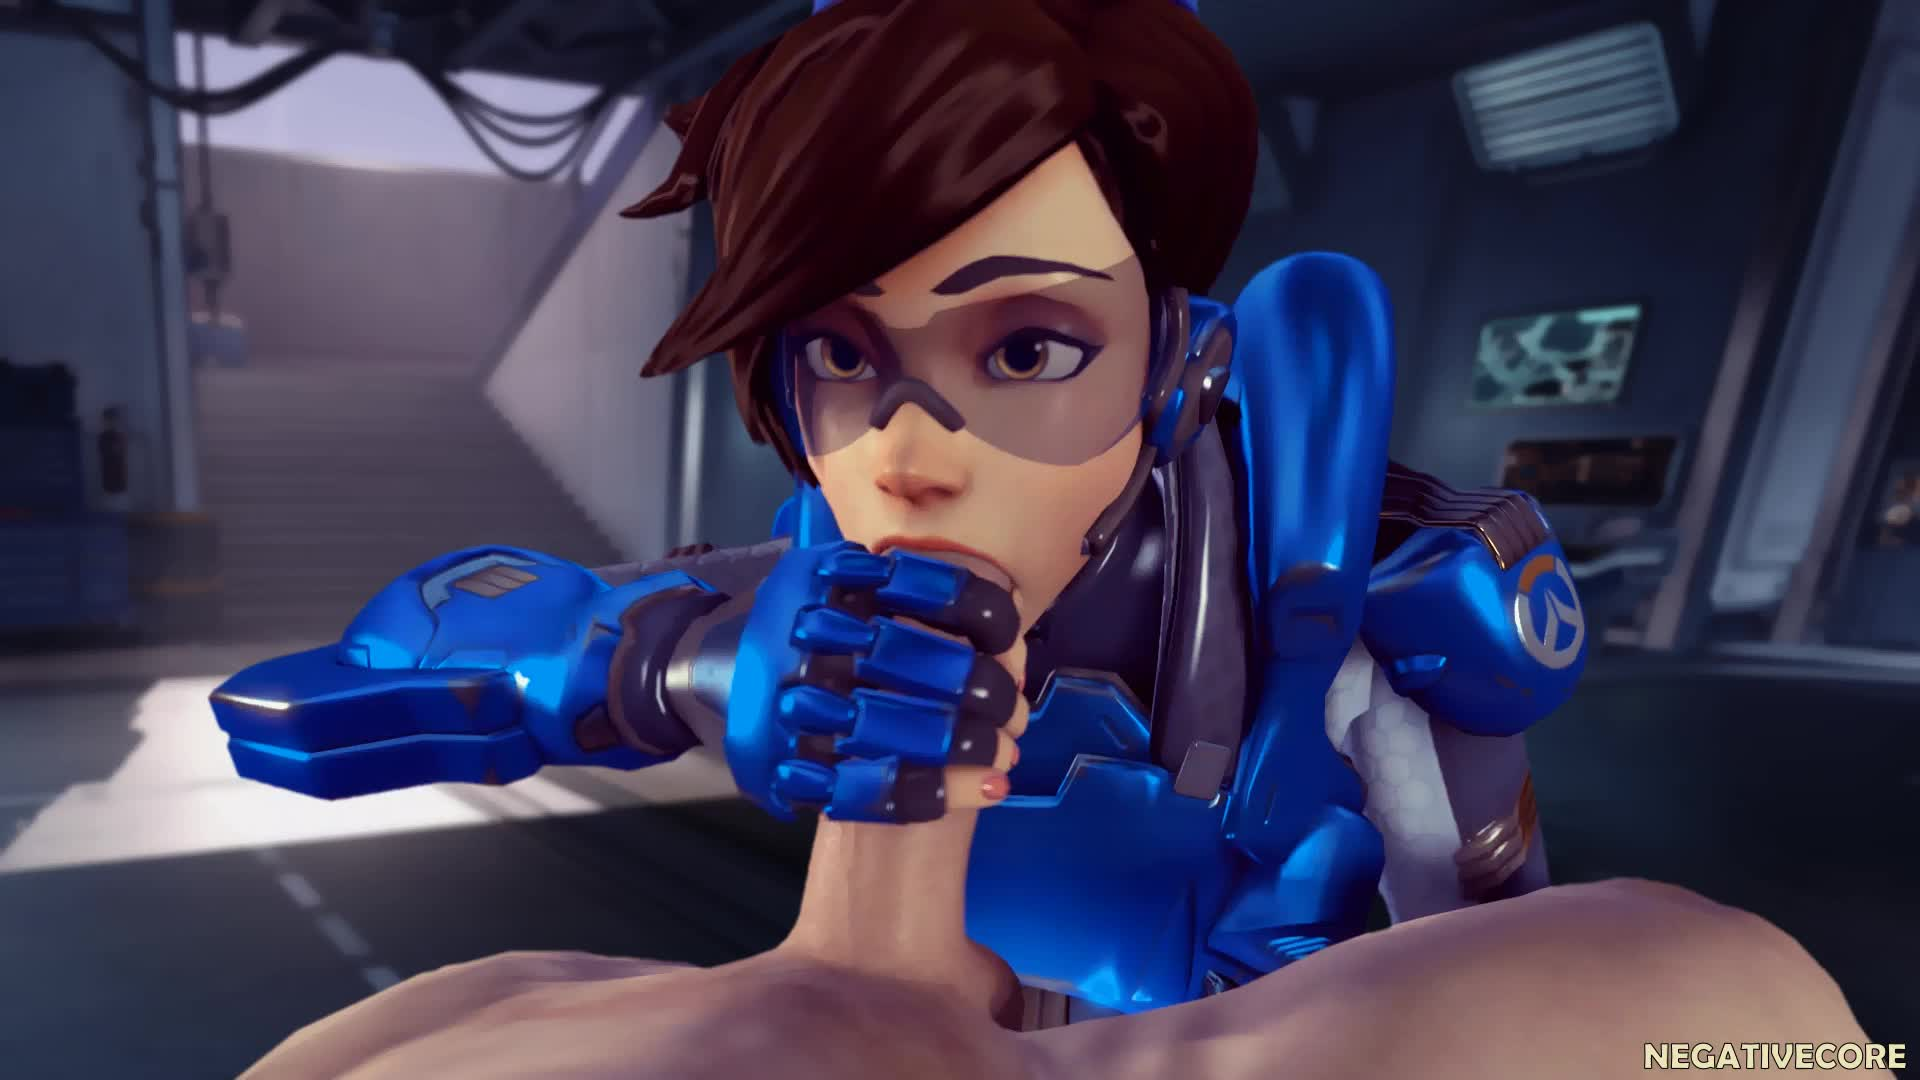 3D Animated Negativecoresfm Overwatch Source_Filmmaker Tracer // 1920x1080 // 1.9MB // webm